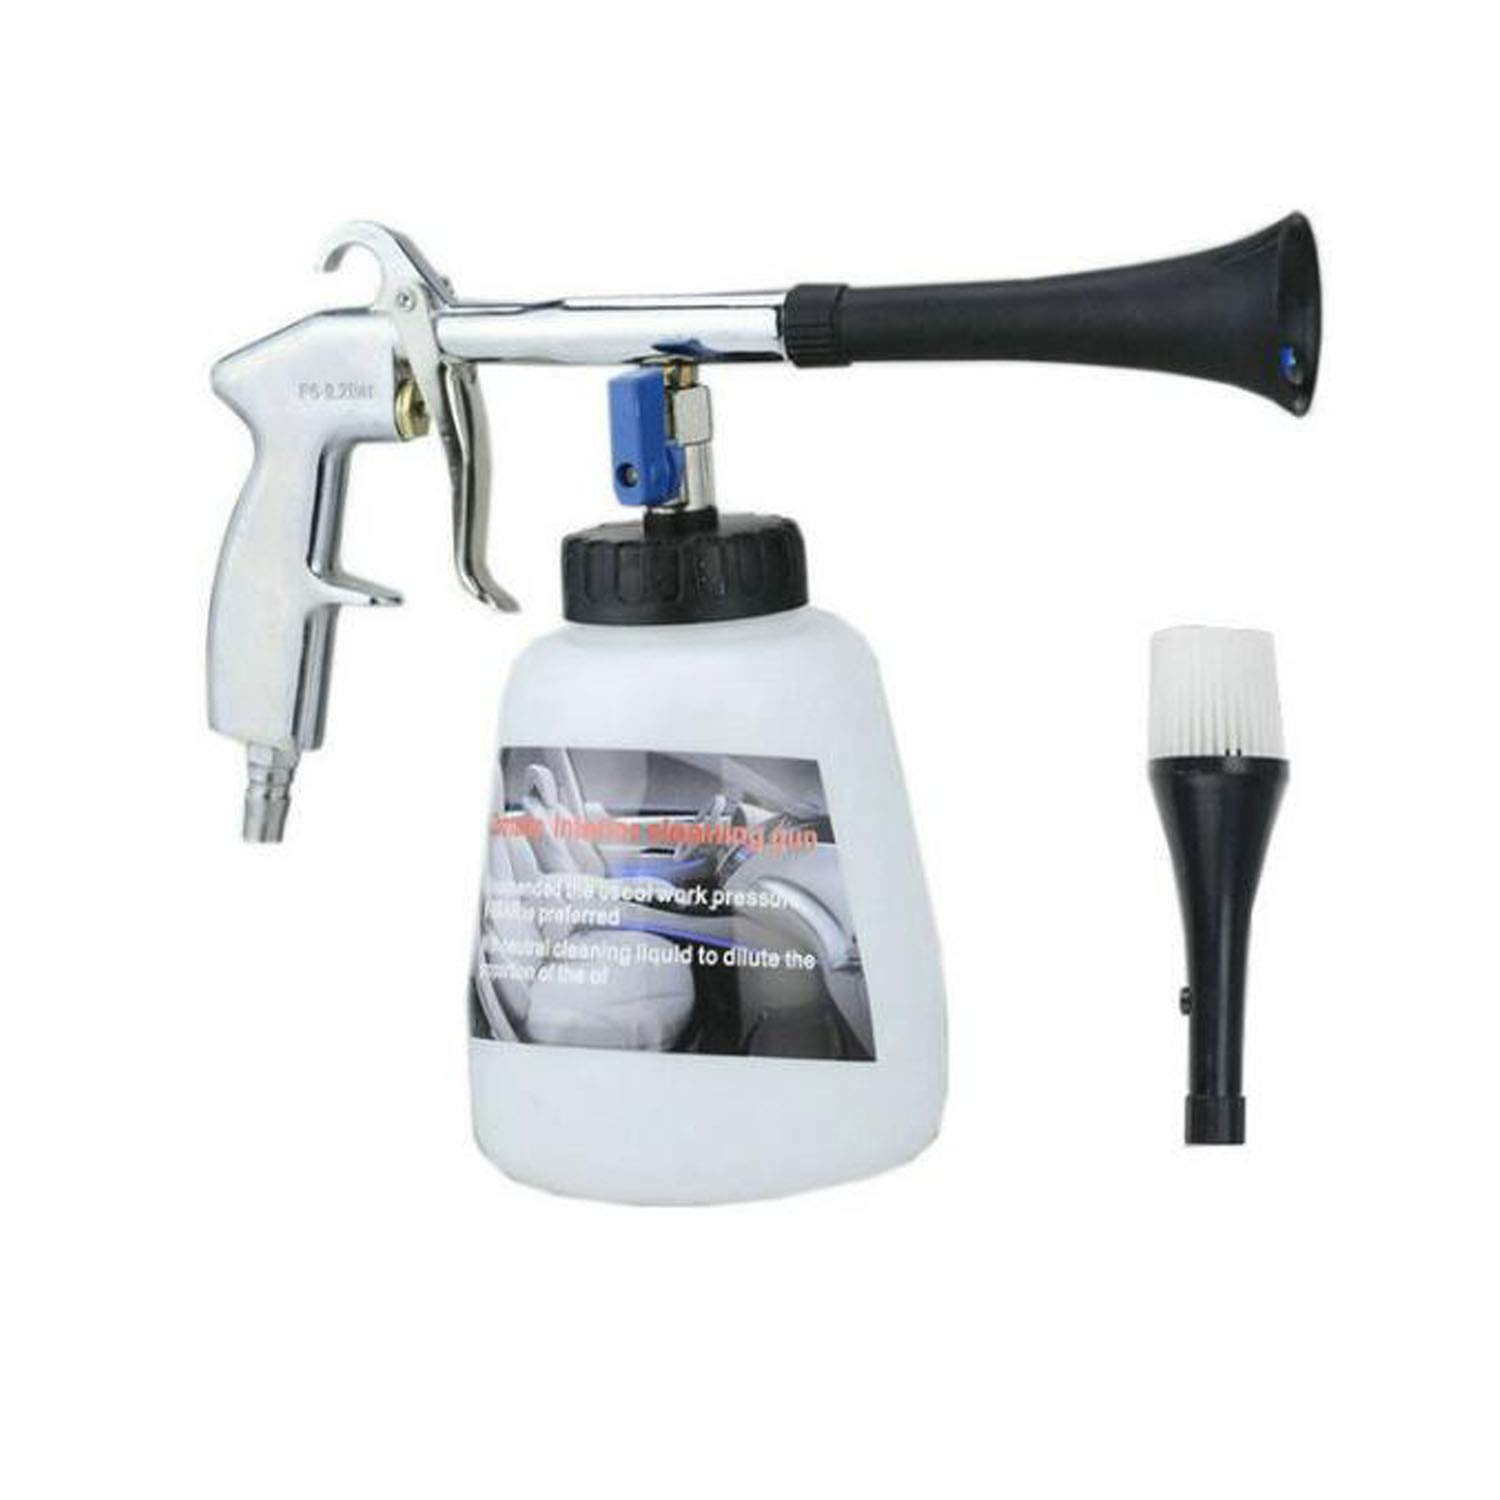 Dasen Car Cleaning Gun, Car Care Interior Cleaning Kit Tool with Nozzle Sprayer Connector by Dasen